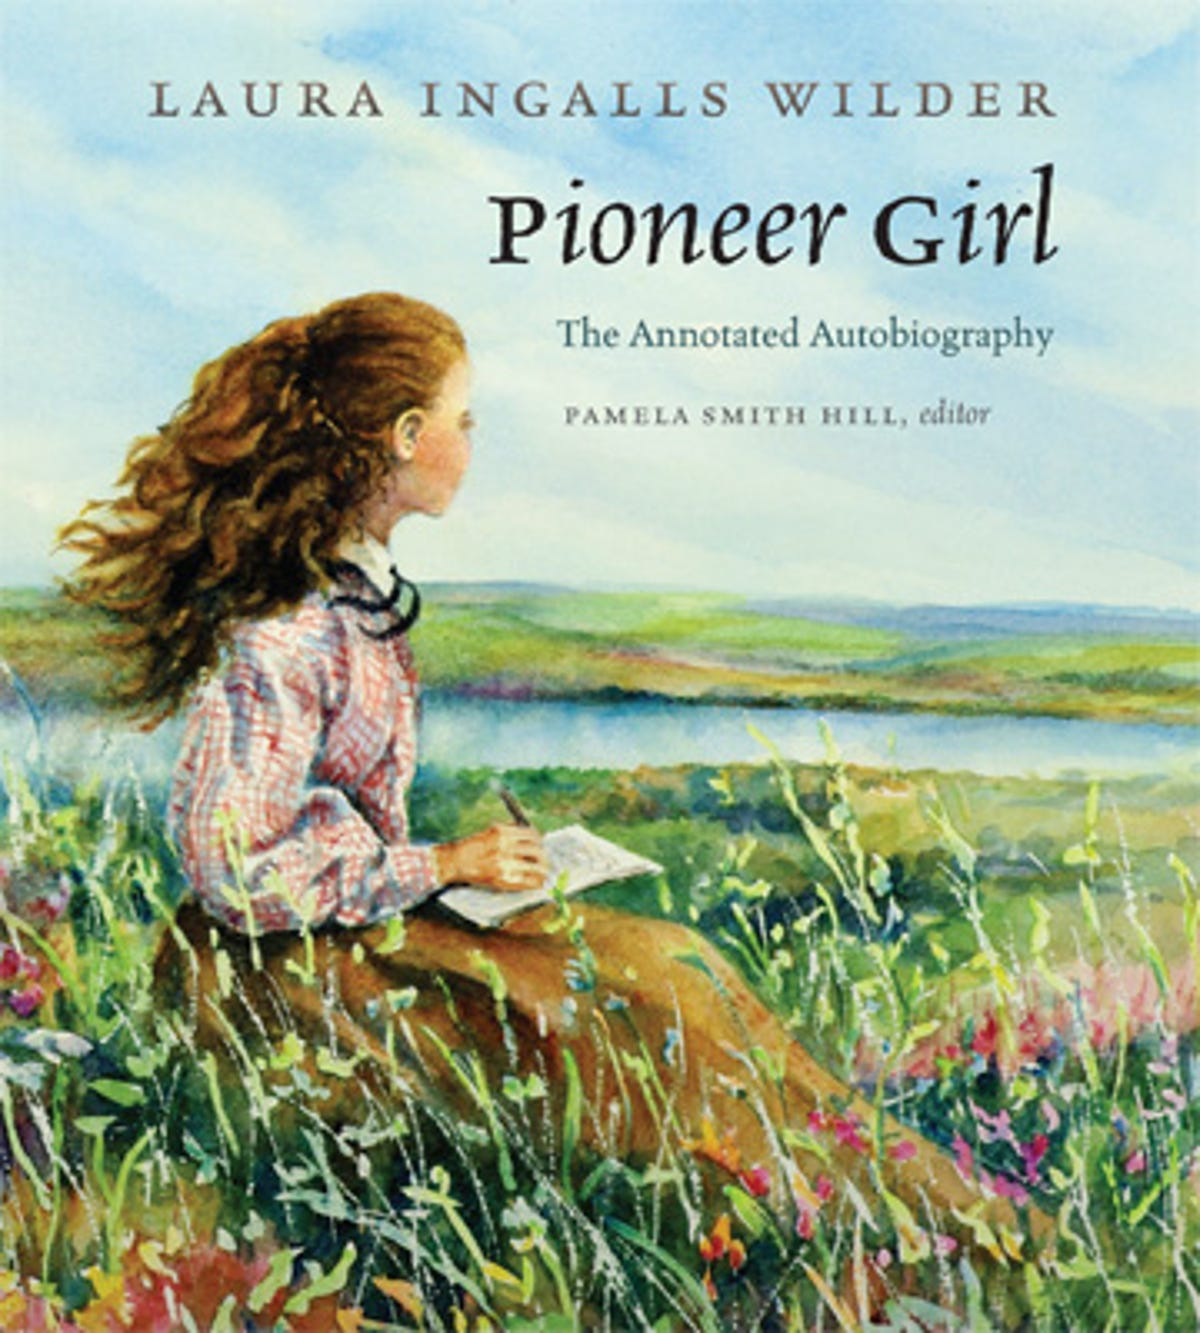 MSU offers free online course on Laura Ingalls Wilder